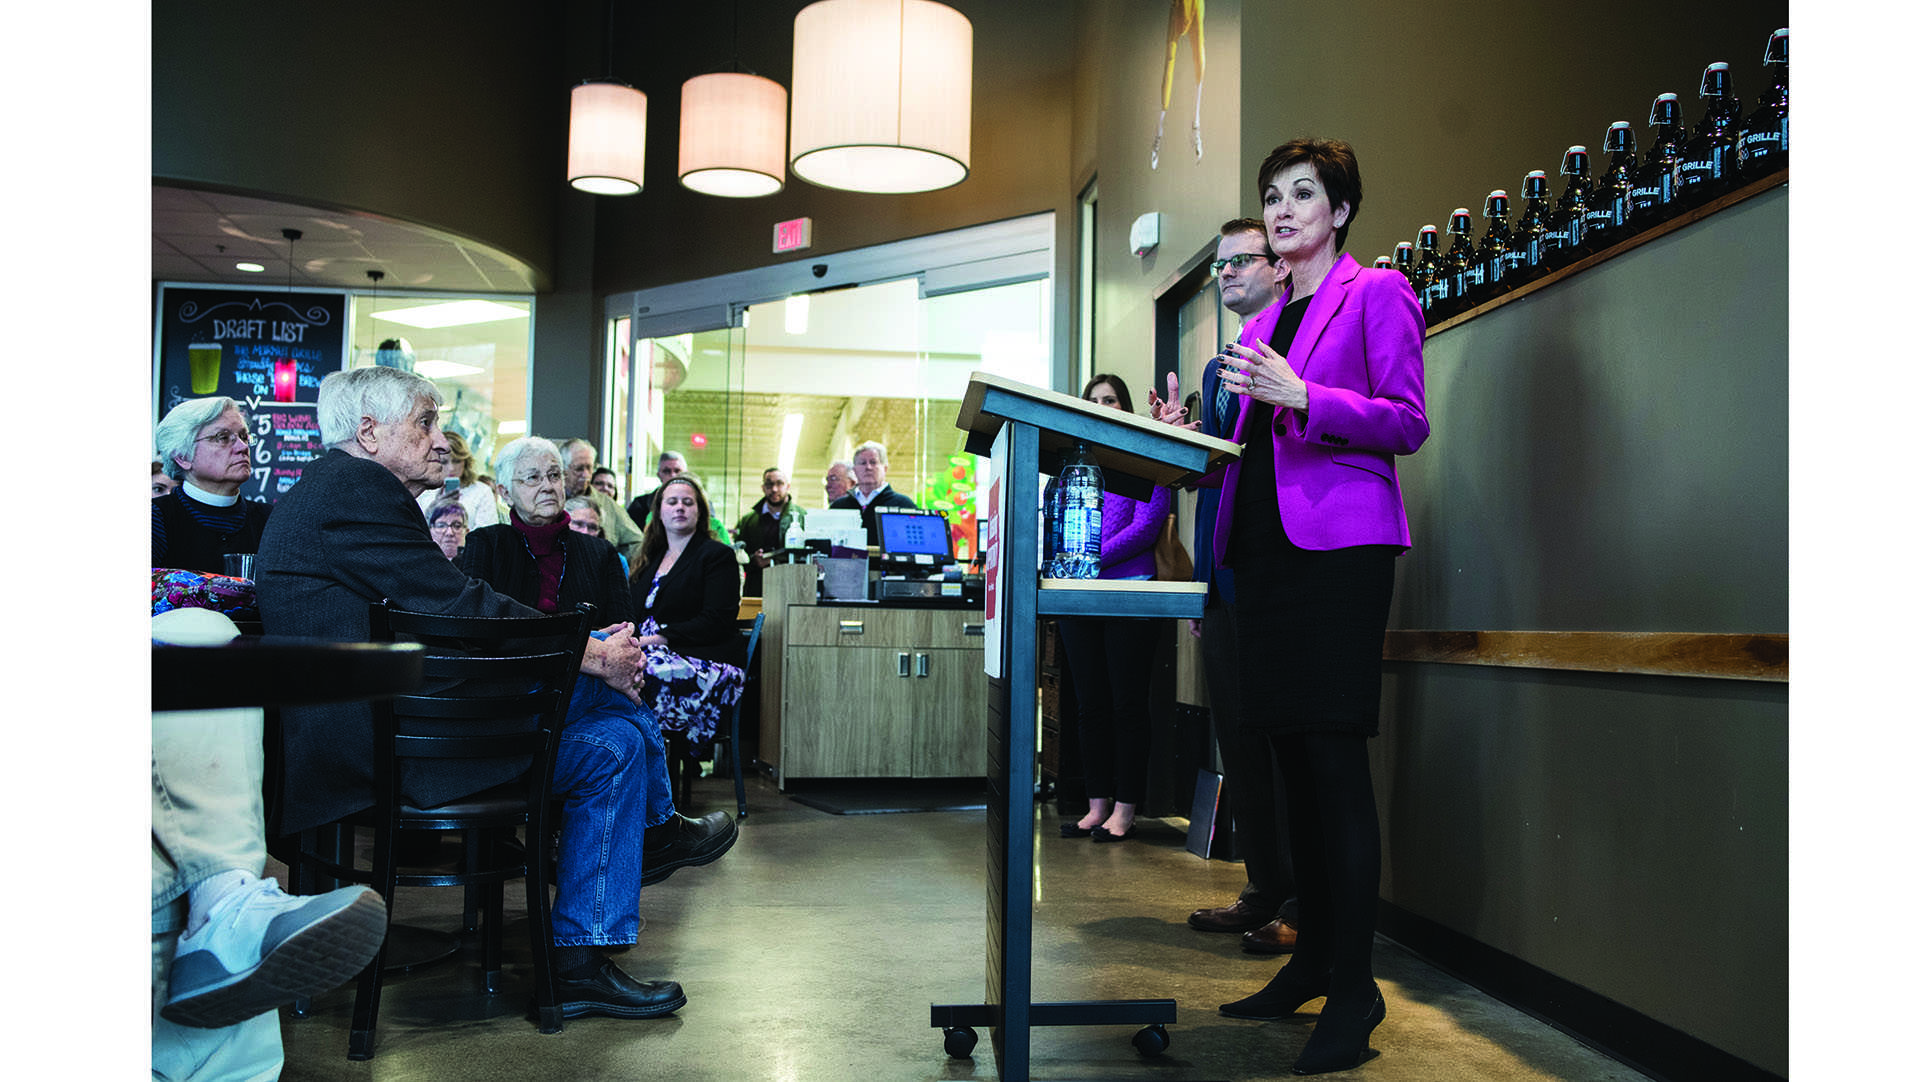 Kim Reynolds talks at Hy-Vee in Coralville during her 99 Counties tour on Thursday, April 5, 2018. (Ben Allan Smith/The Daily Iowan)